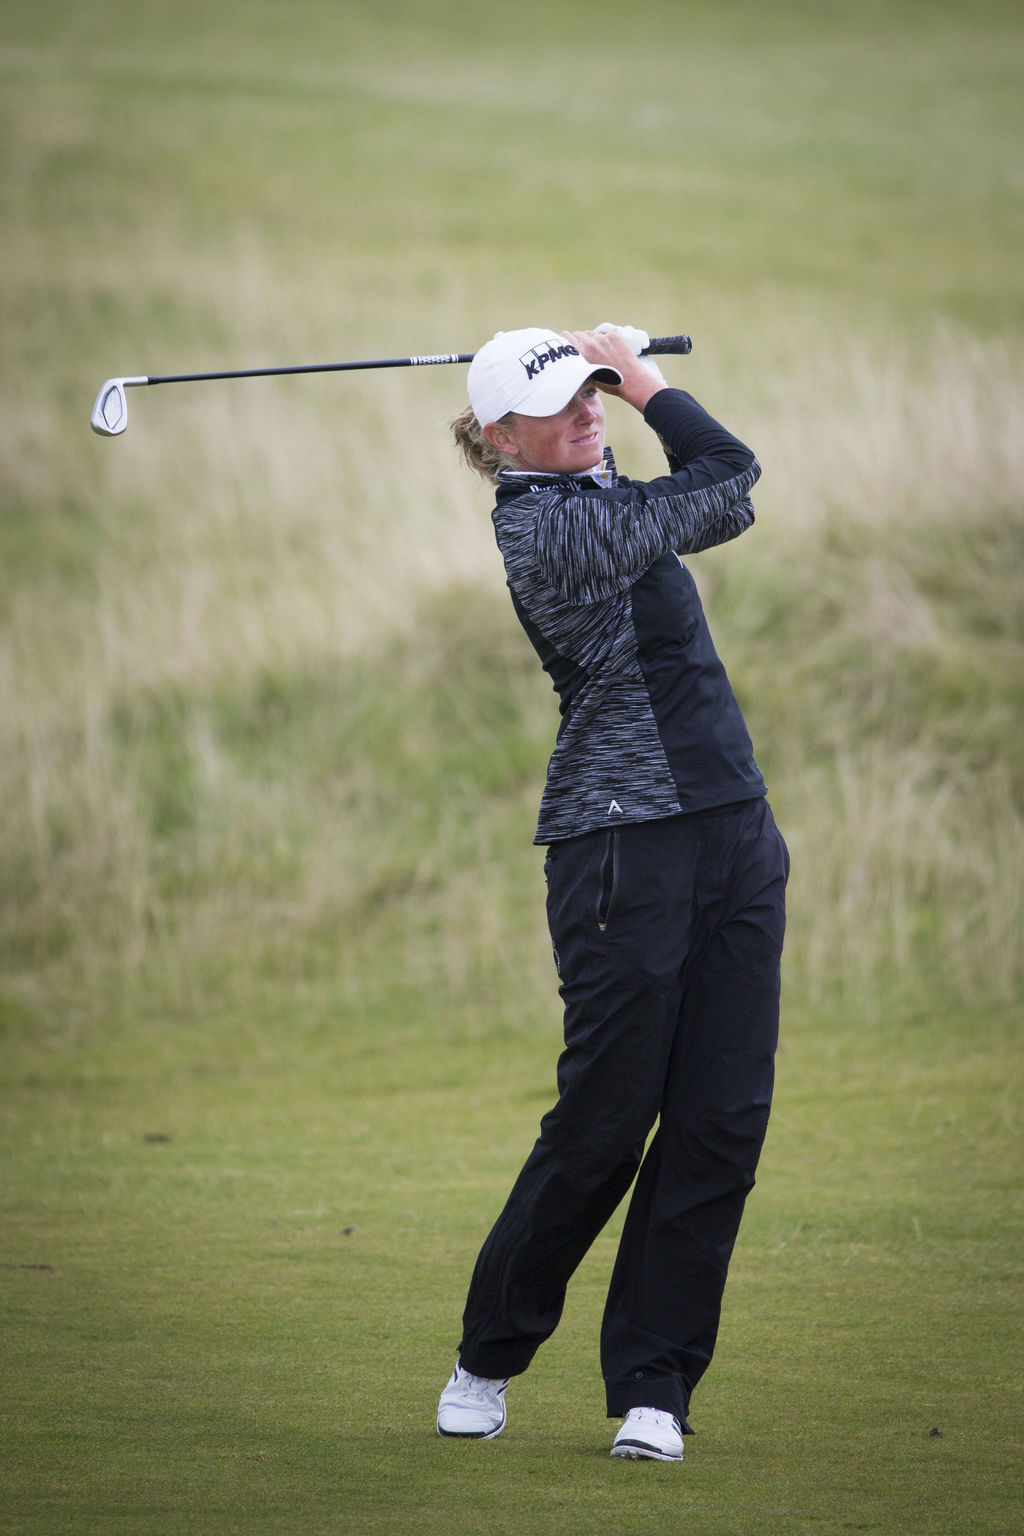 USA's Stacey Lewis plays her approach shot into the 15th hole, during day three of the Women's British Open at Kingsbarns Golf Links, St Andrews, Scot...